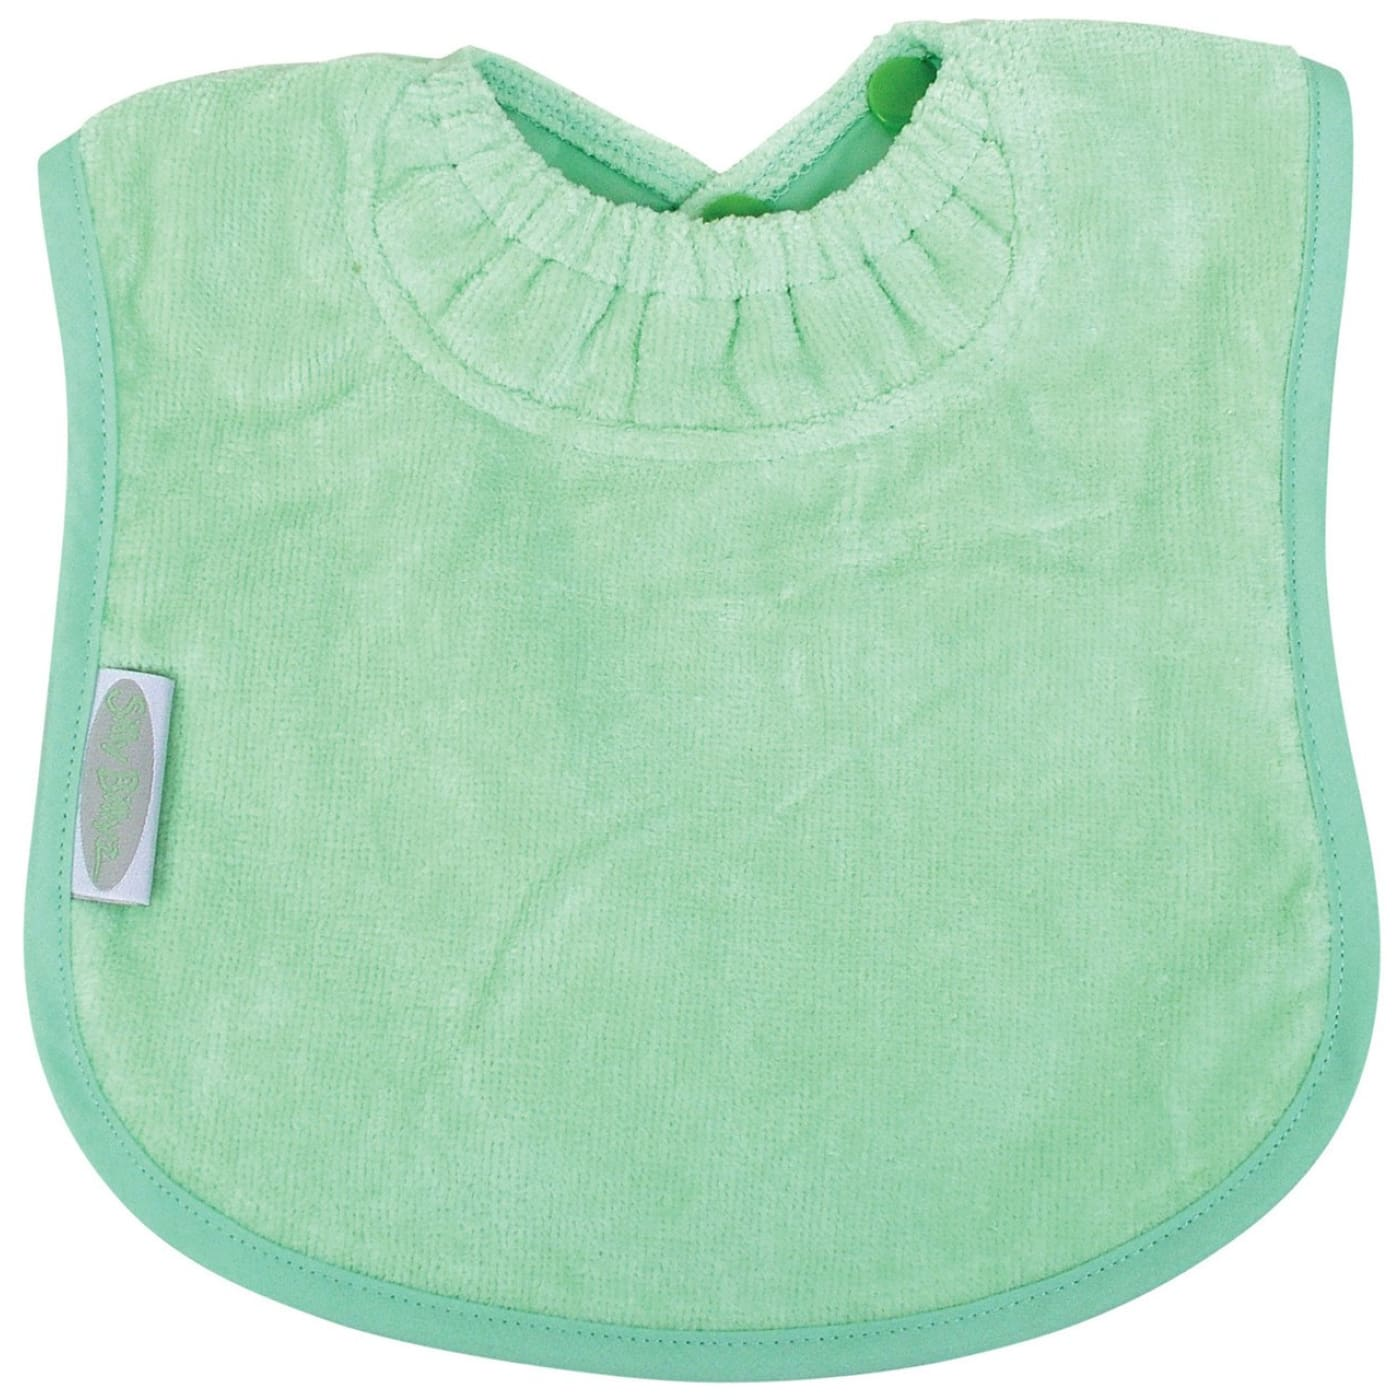 Silly Billyz Towelled Bib - Mint - NURSING & FEEDING - BIBS/BURP CLOTHS